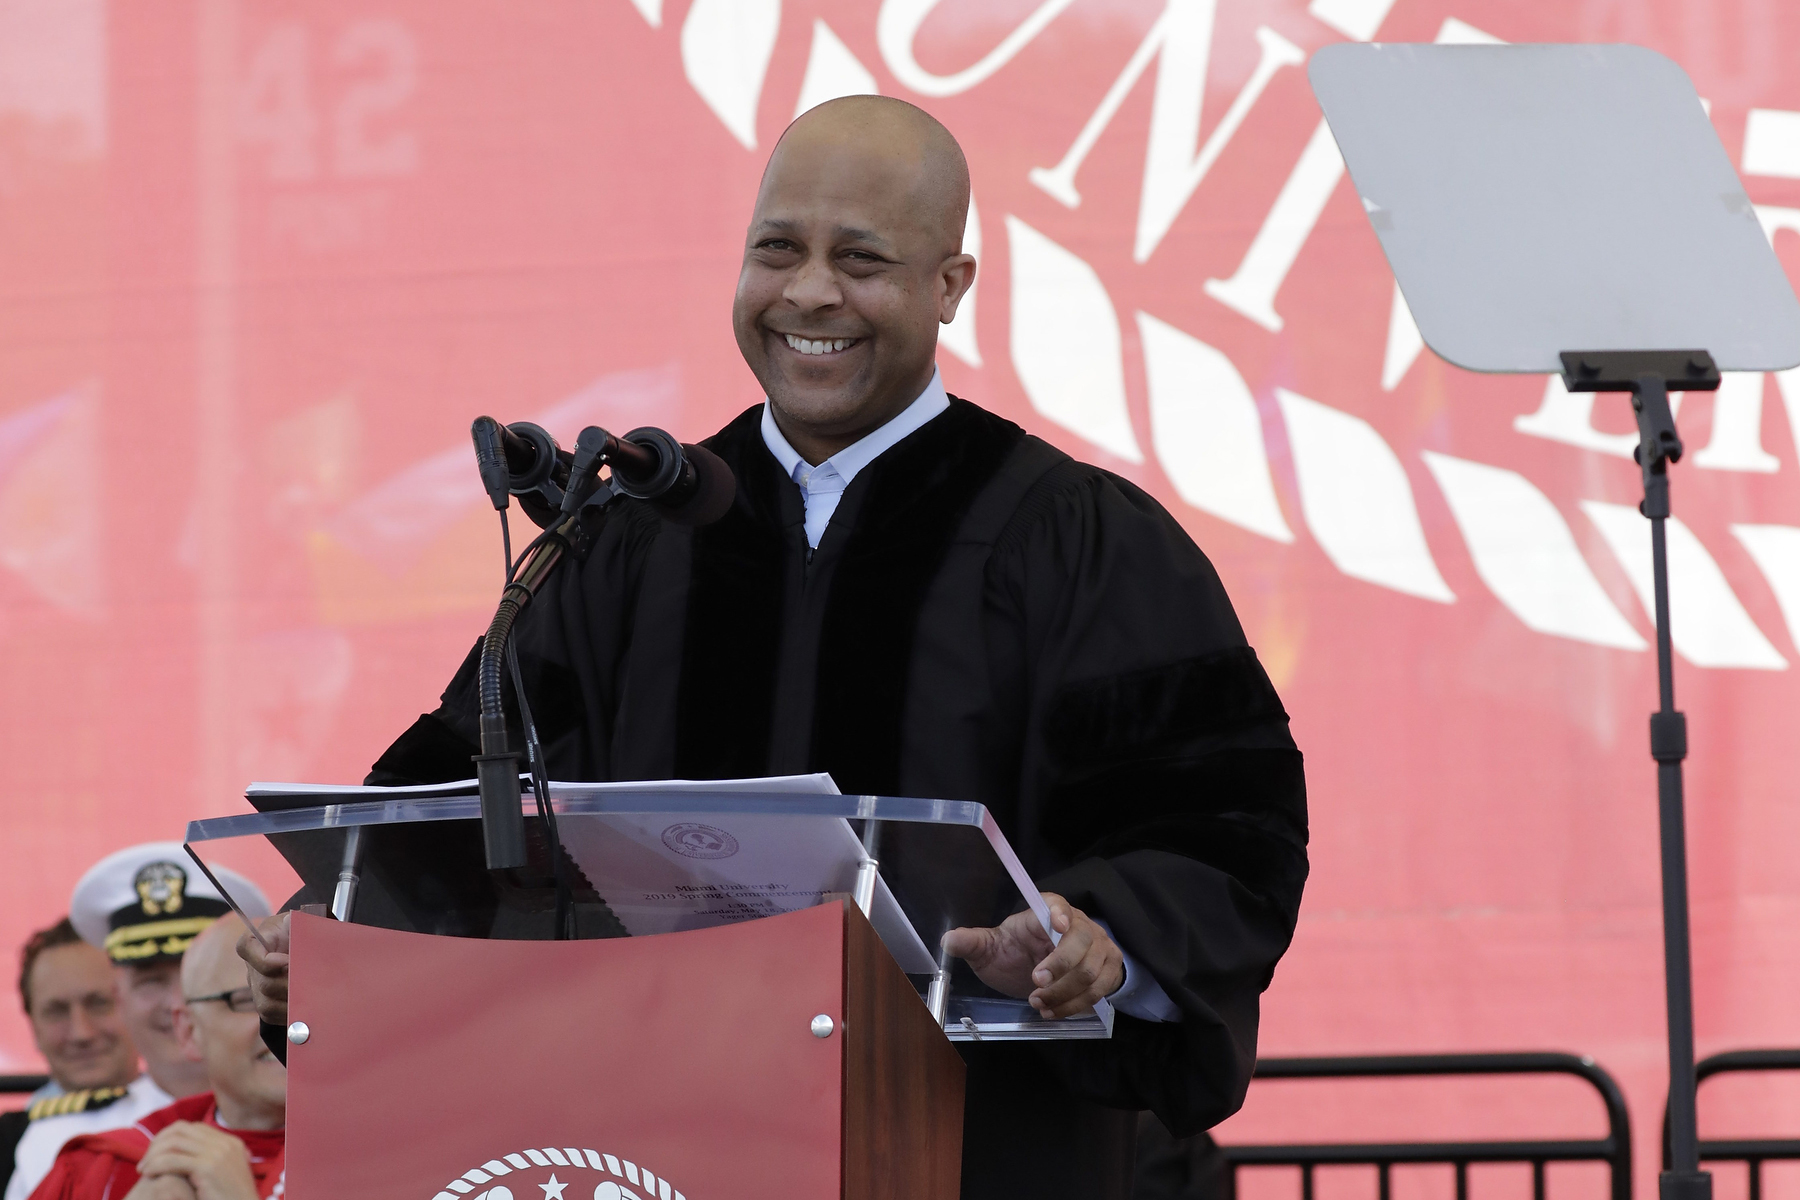 Jeff Pegues speaking at commencement smiling at the crowd